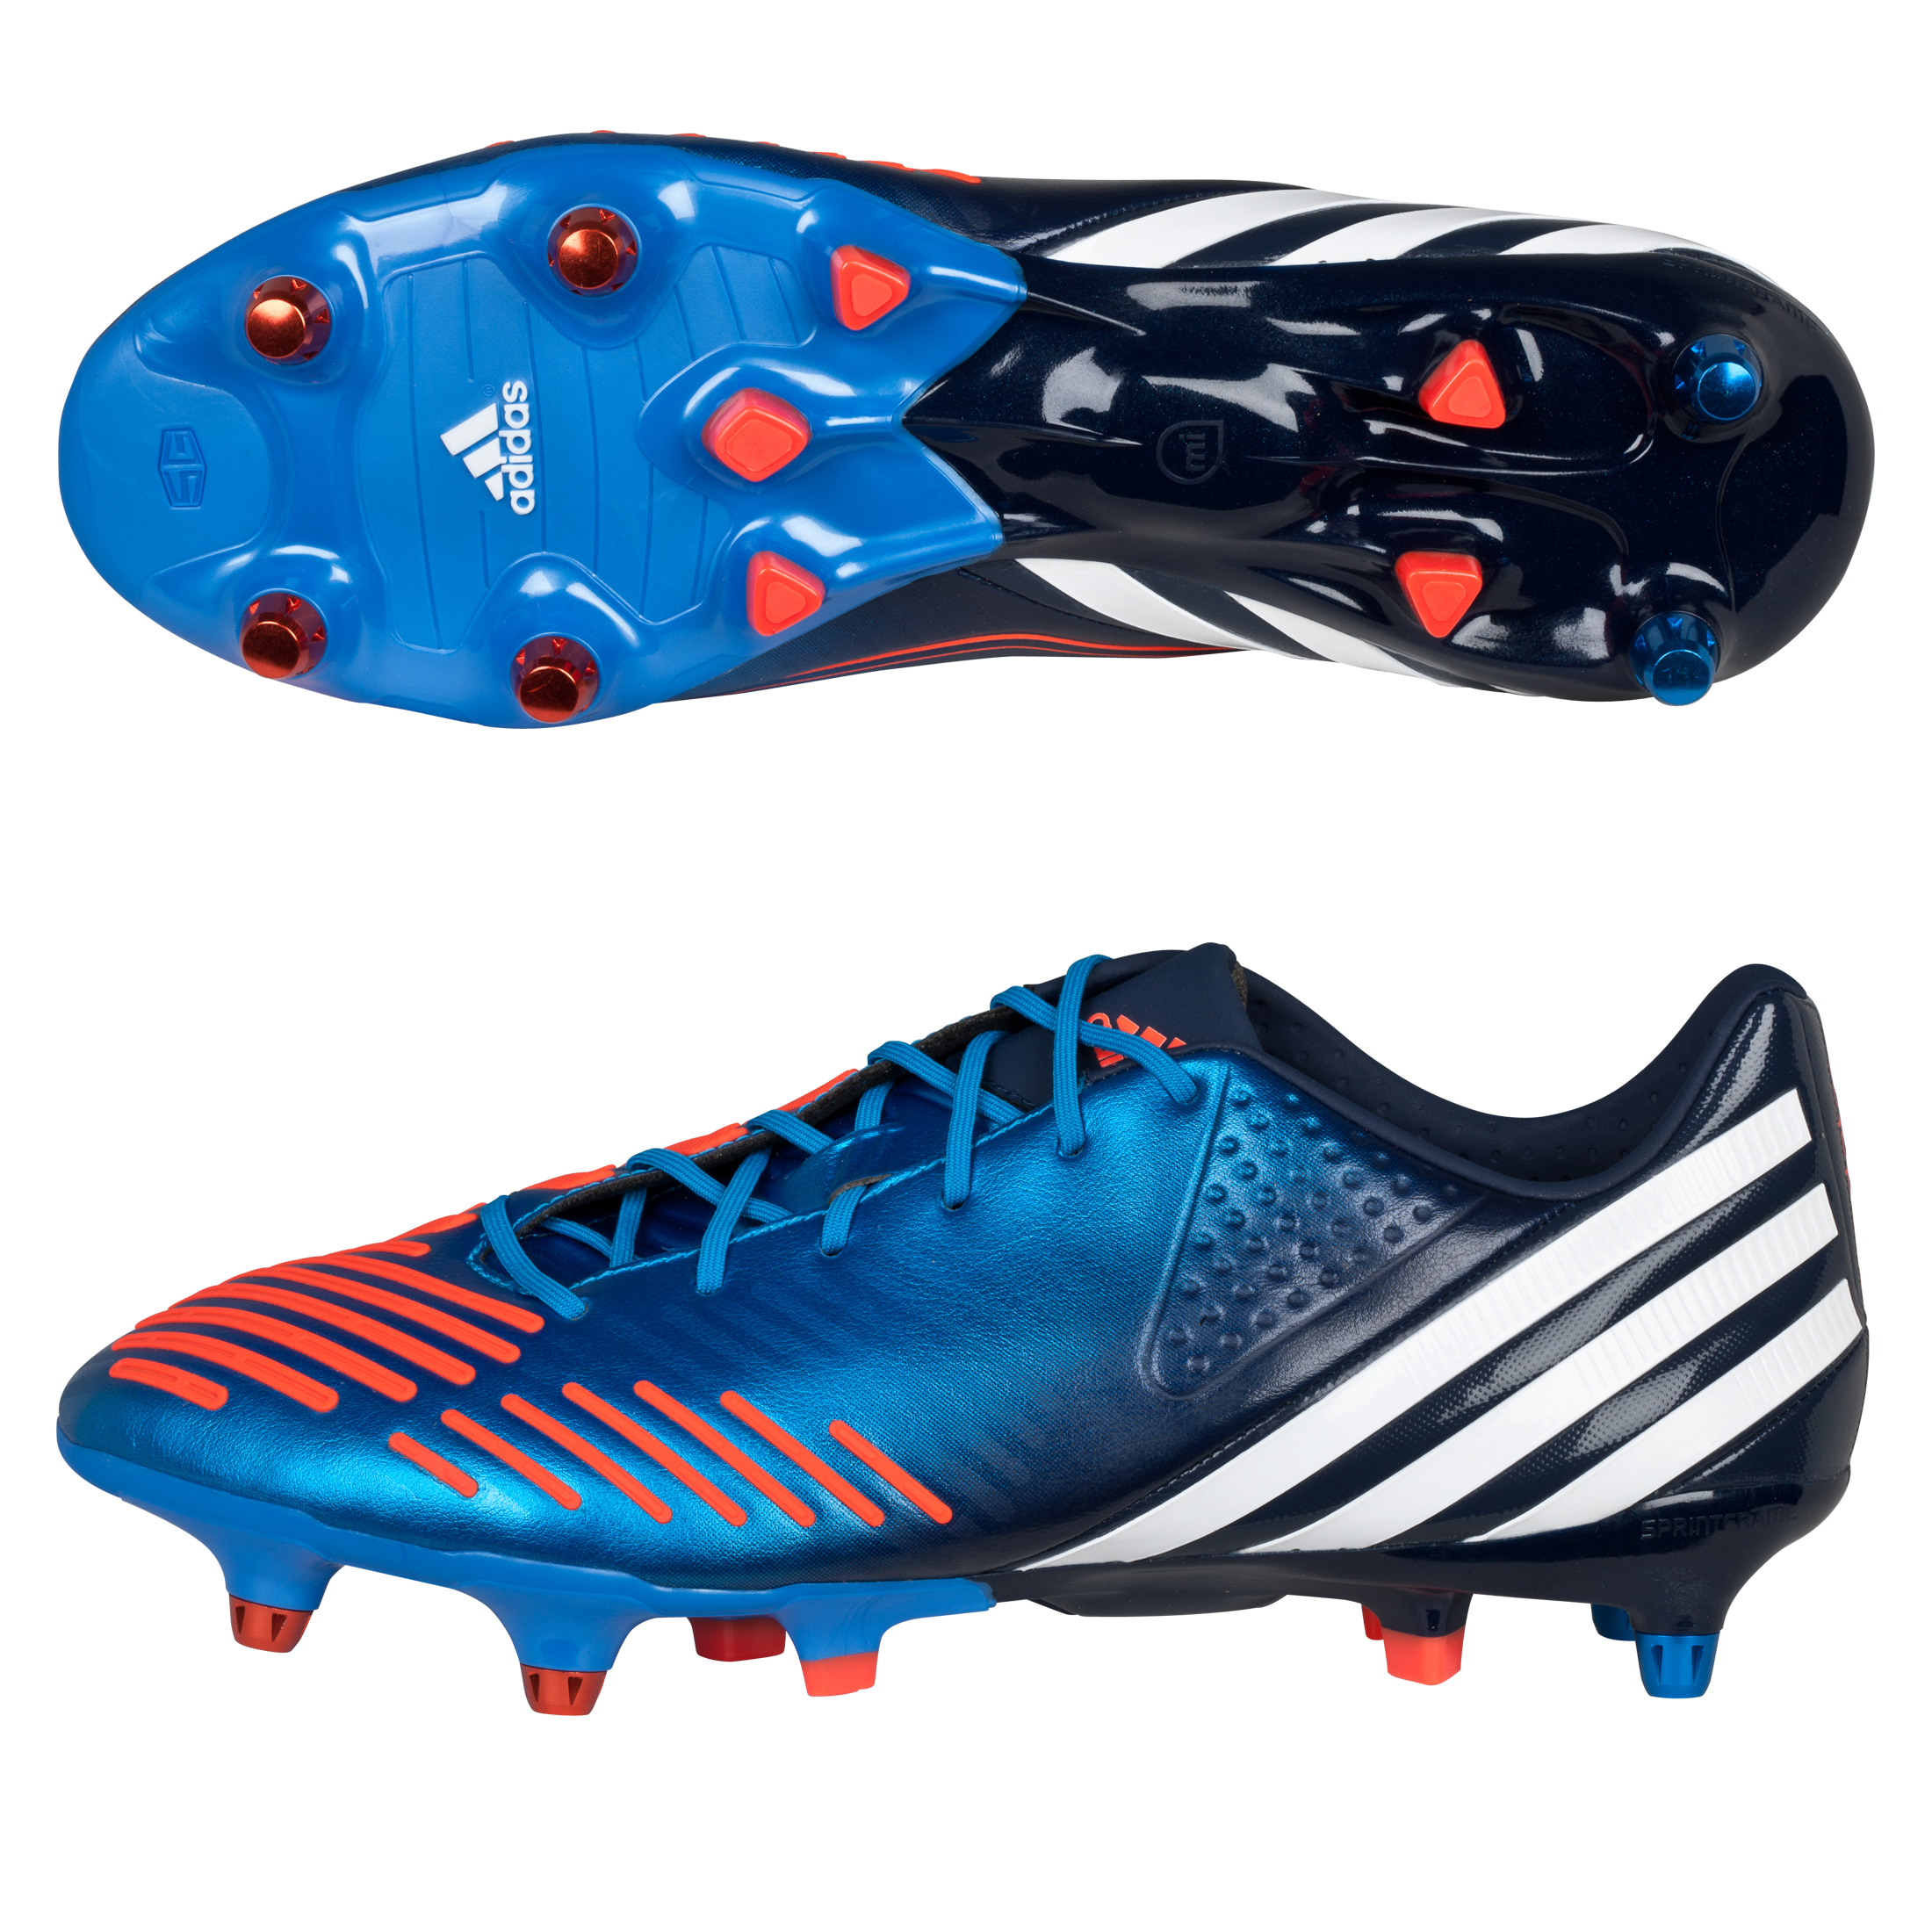 Adidas Predator LZ XTRX Soft Ground Football Boots - Bright Blue/Running White/Infrared